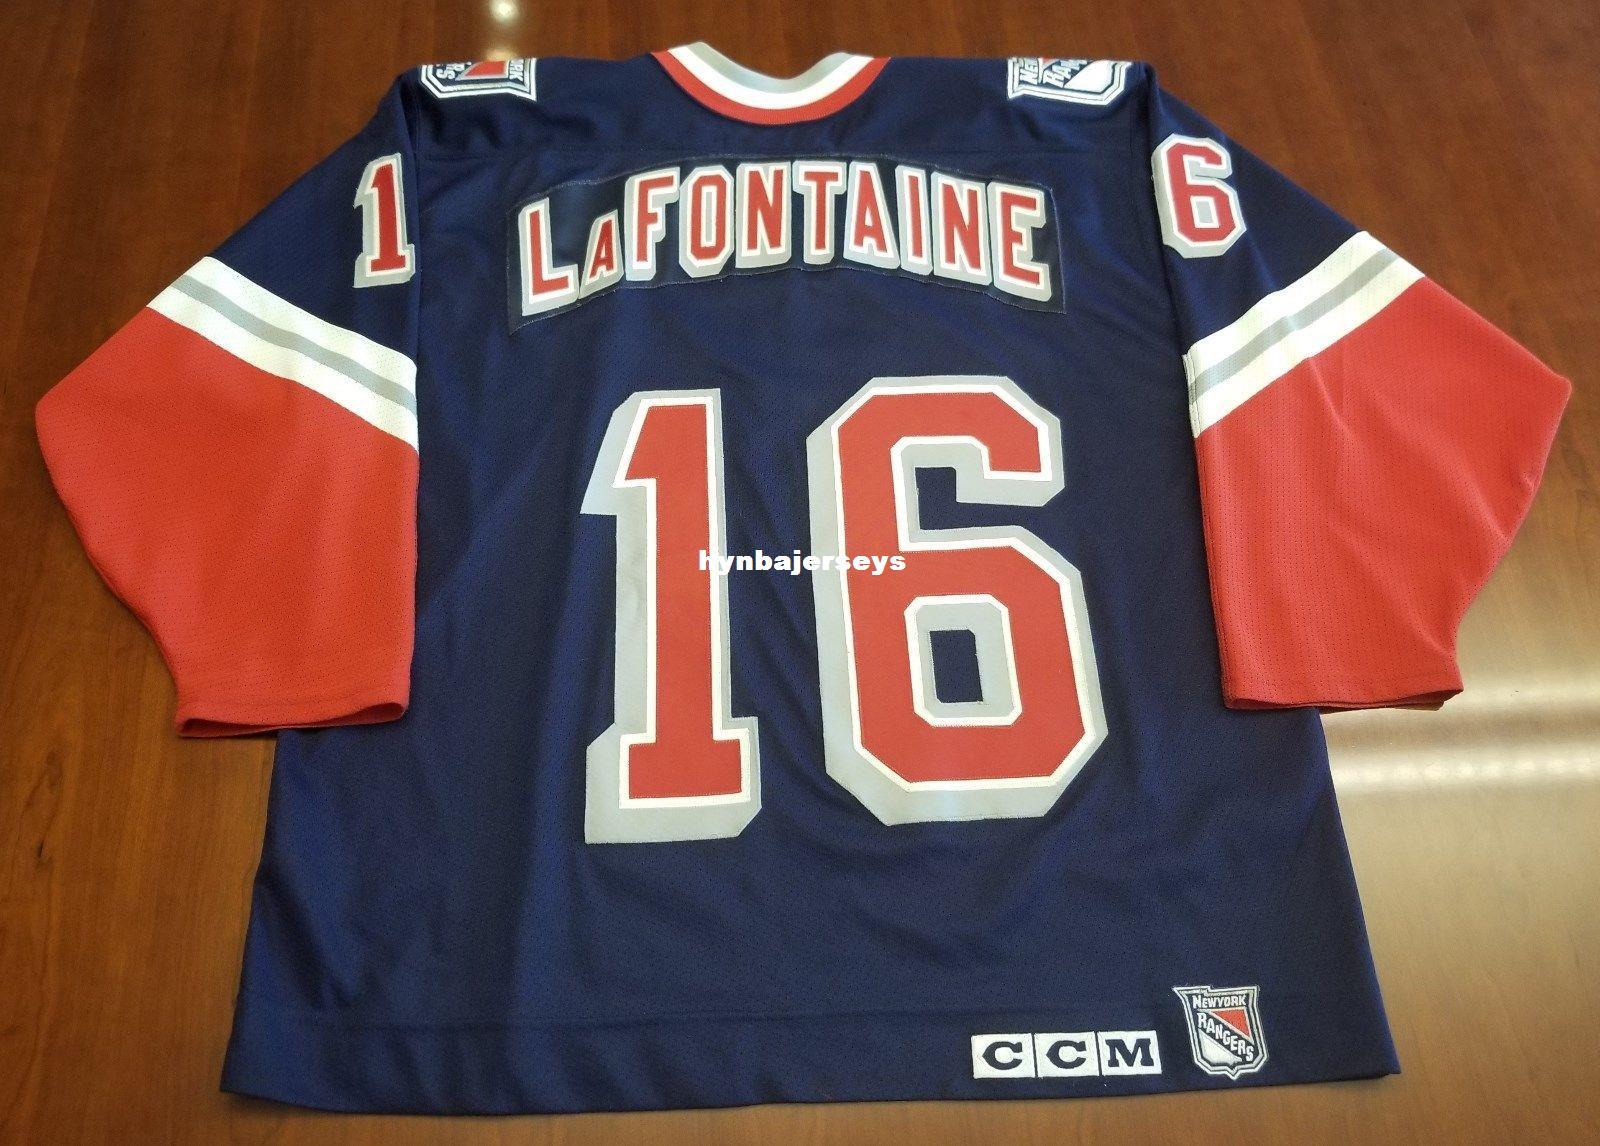 82e3bce521b ... discount code for 2018 custom pat lafontaine vintage new york rangers  ccm cheap hockey jersey lady